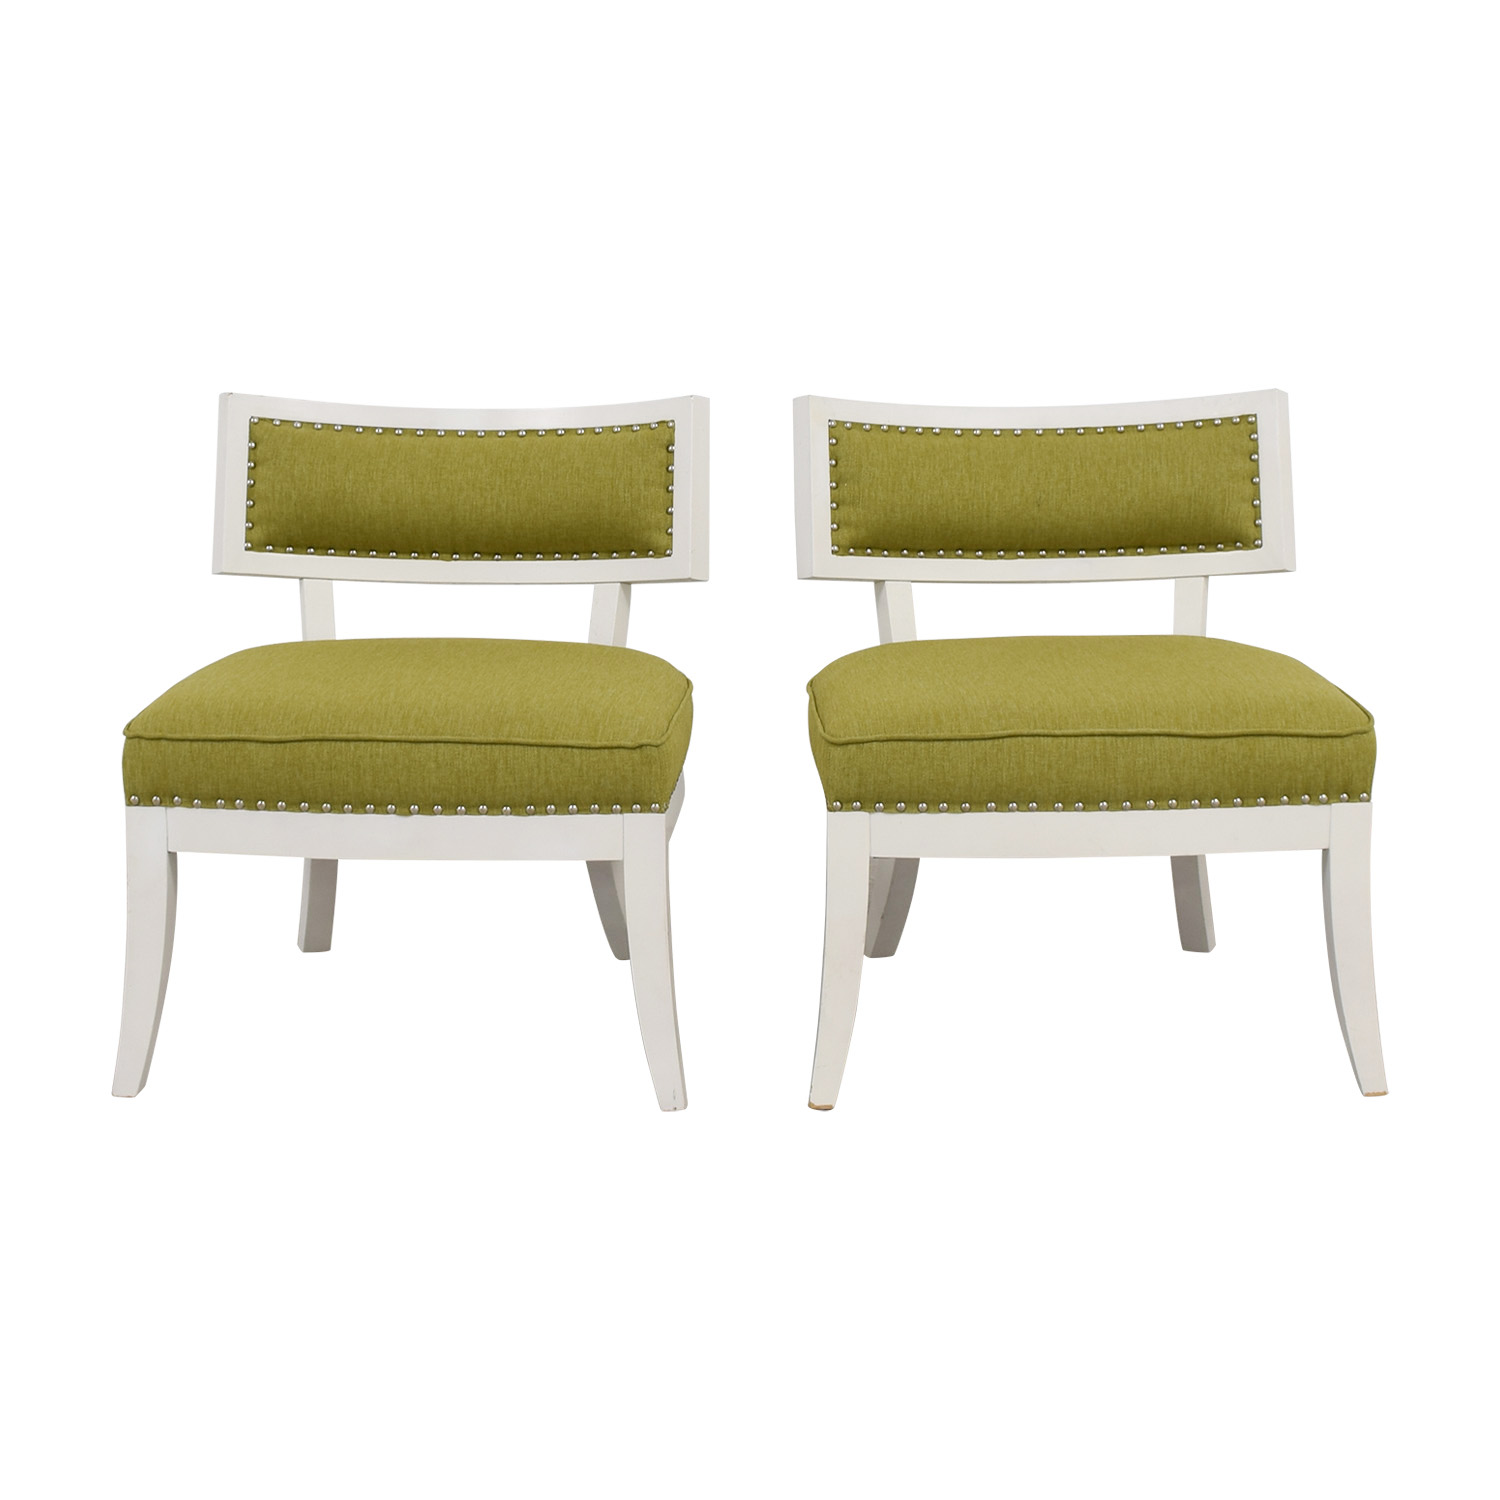 Ordinaire Sunpan Modern Home Sunpan Modern Home Mystique Pear Green Chairs On Sale ...